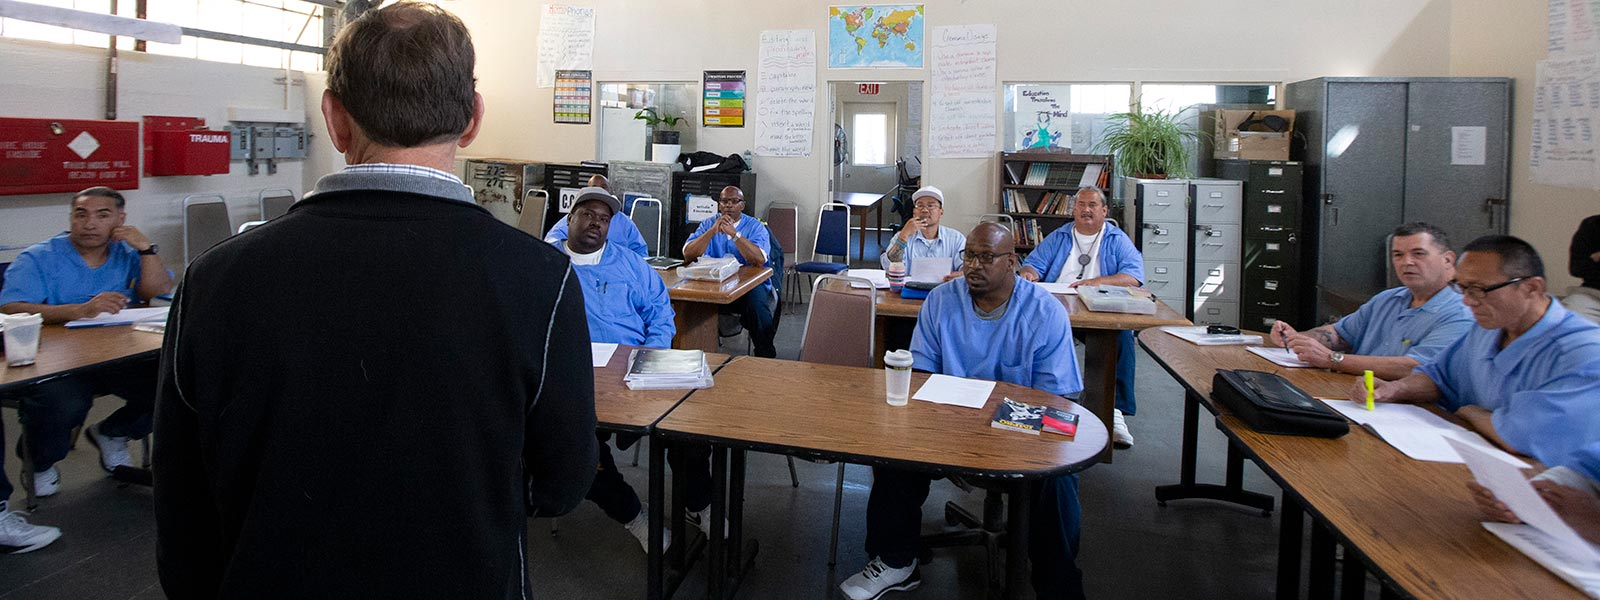 Classroom at San Quentin State Prison